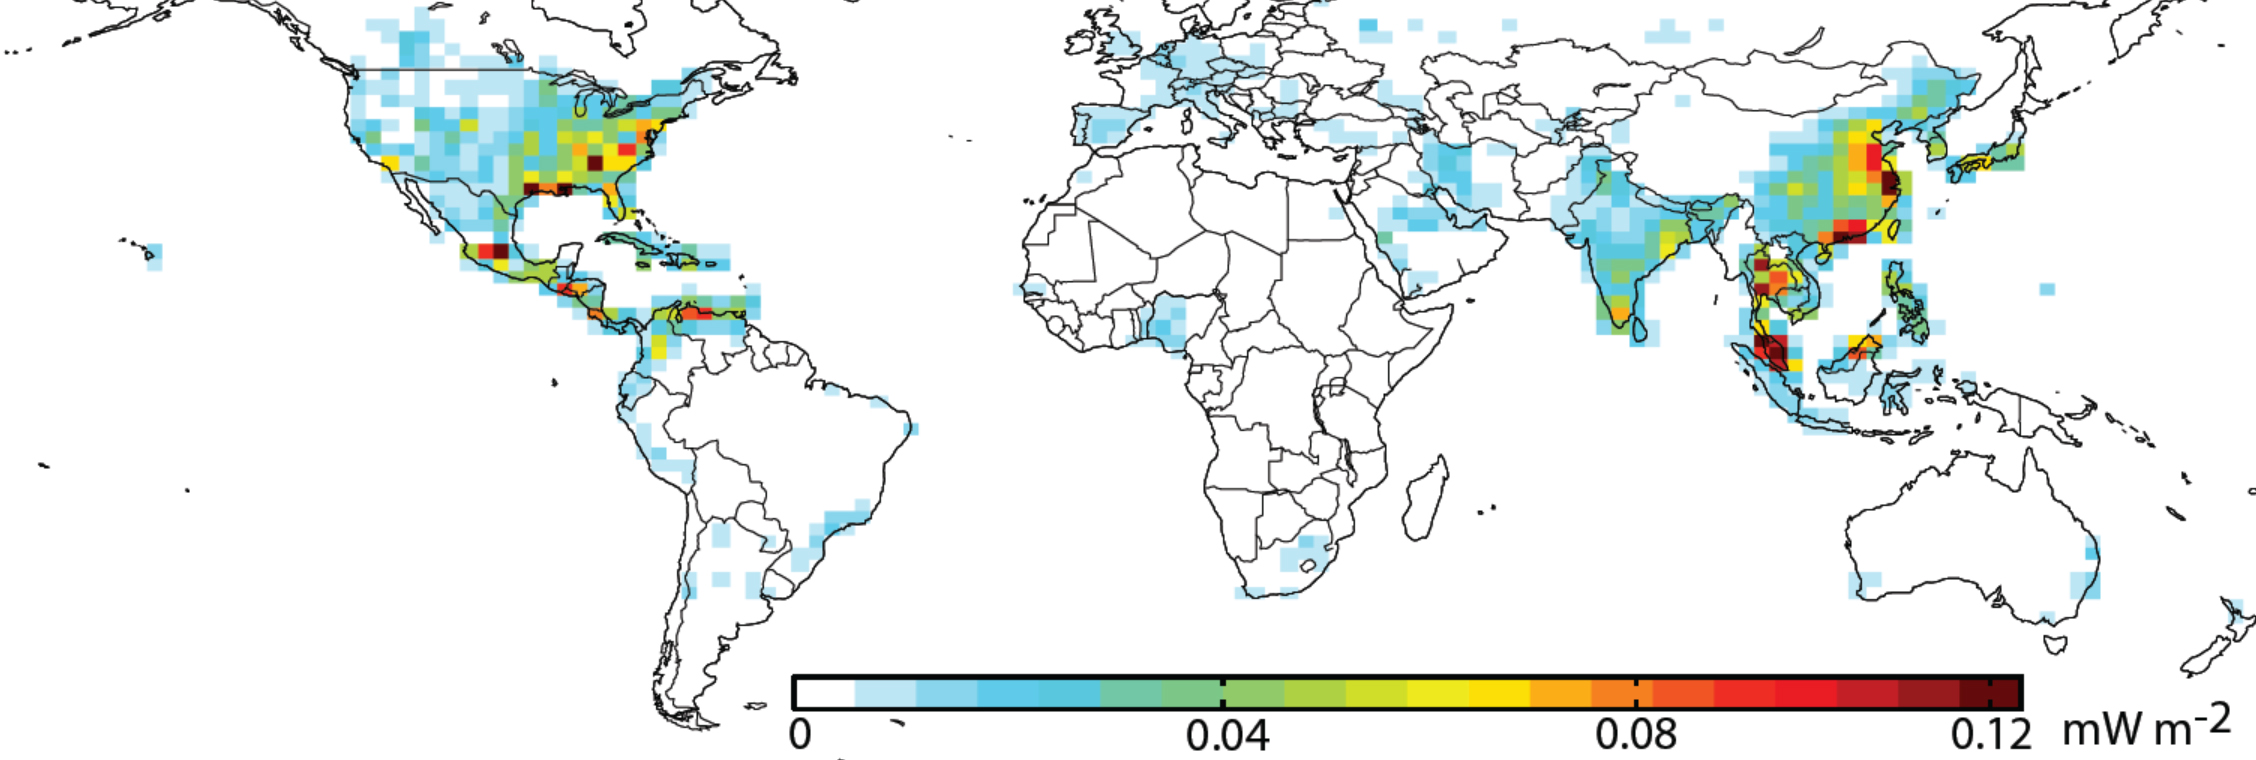 Contributions of nitrogen dioxide emissions - the primary source of ozone - to the global average thermal absorption of ozone